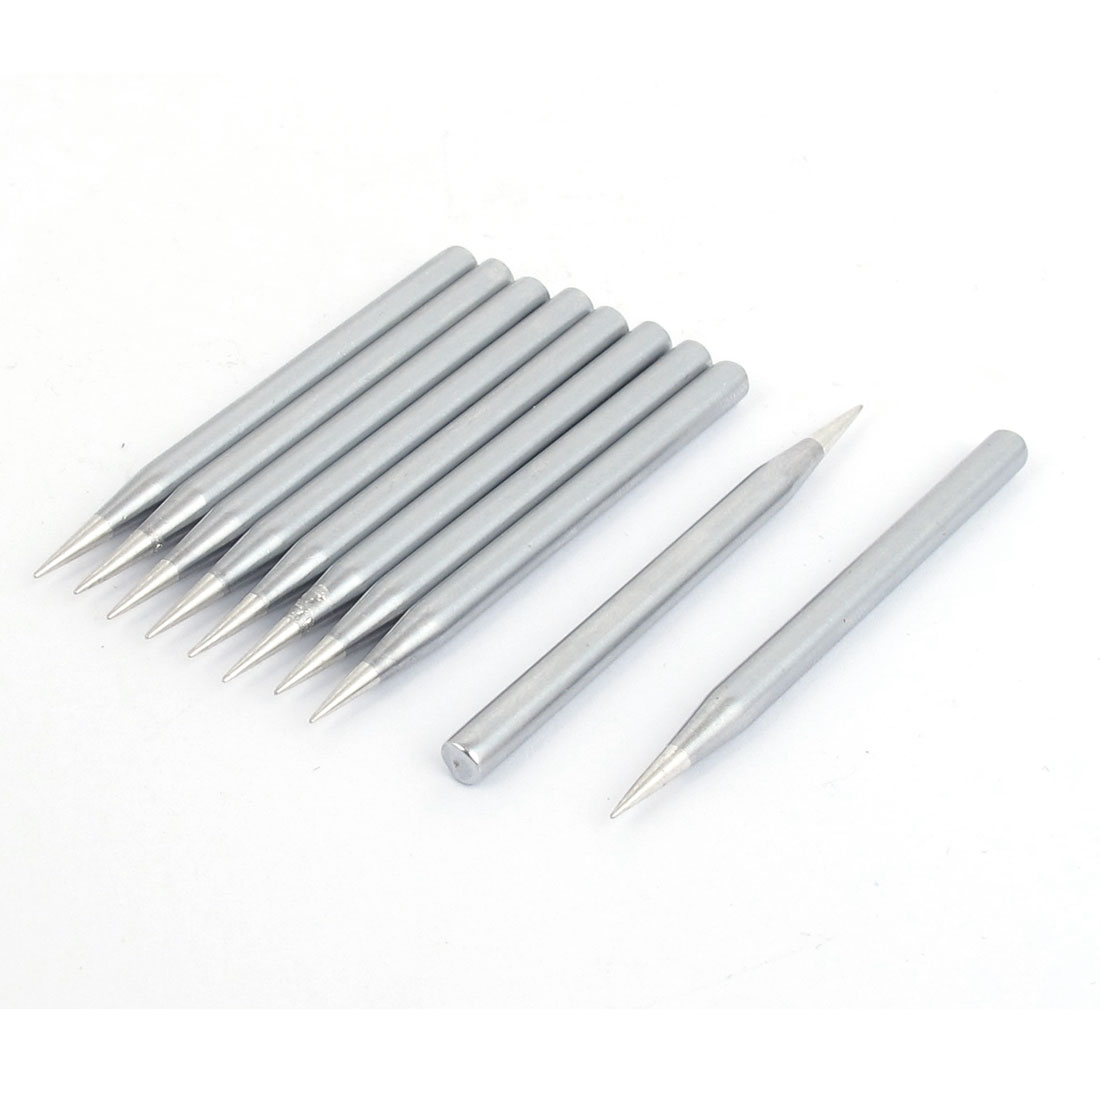 Replaceable 40W-4B 64mm Long 4.5mm Dia Shank 0.5mm Diameter Tip Welding Solder Soldering Iron Point Head 10 Pcs